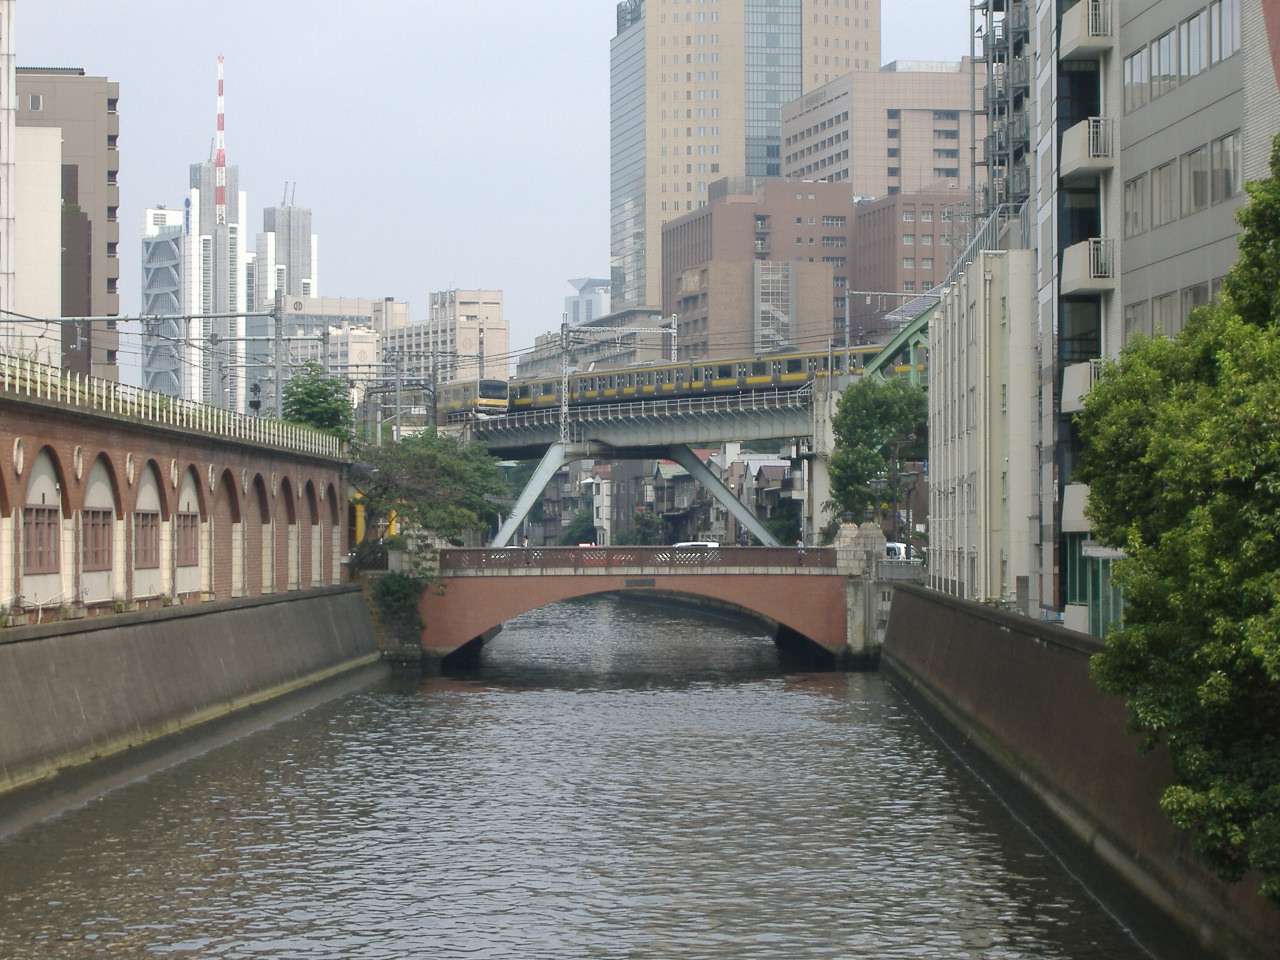 https://upload.wikimedia.org/wikipedia/commons/e/eb/Syouheibashi_bridge%282%29.JPG